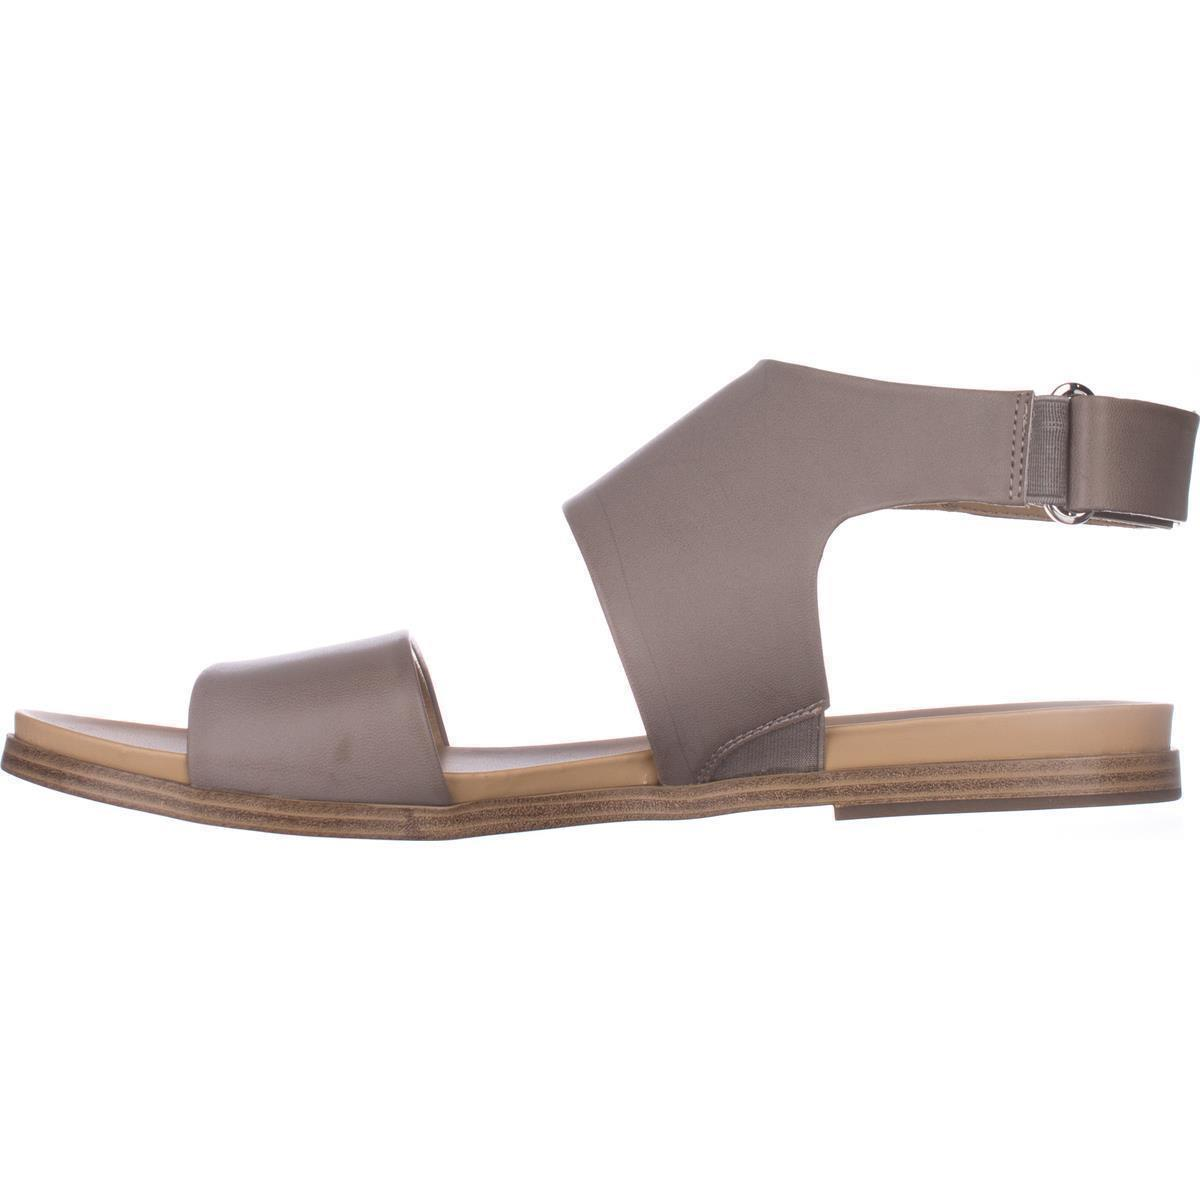 7d230a554309 Lyst - Naturalizer Kimono Flat Sandals in Gray